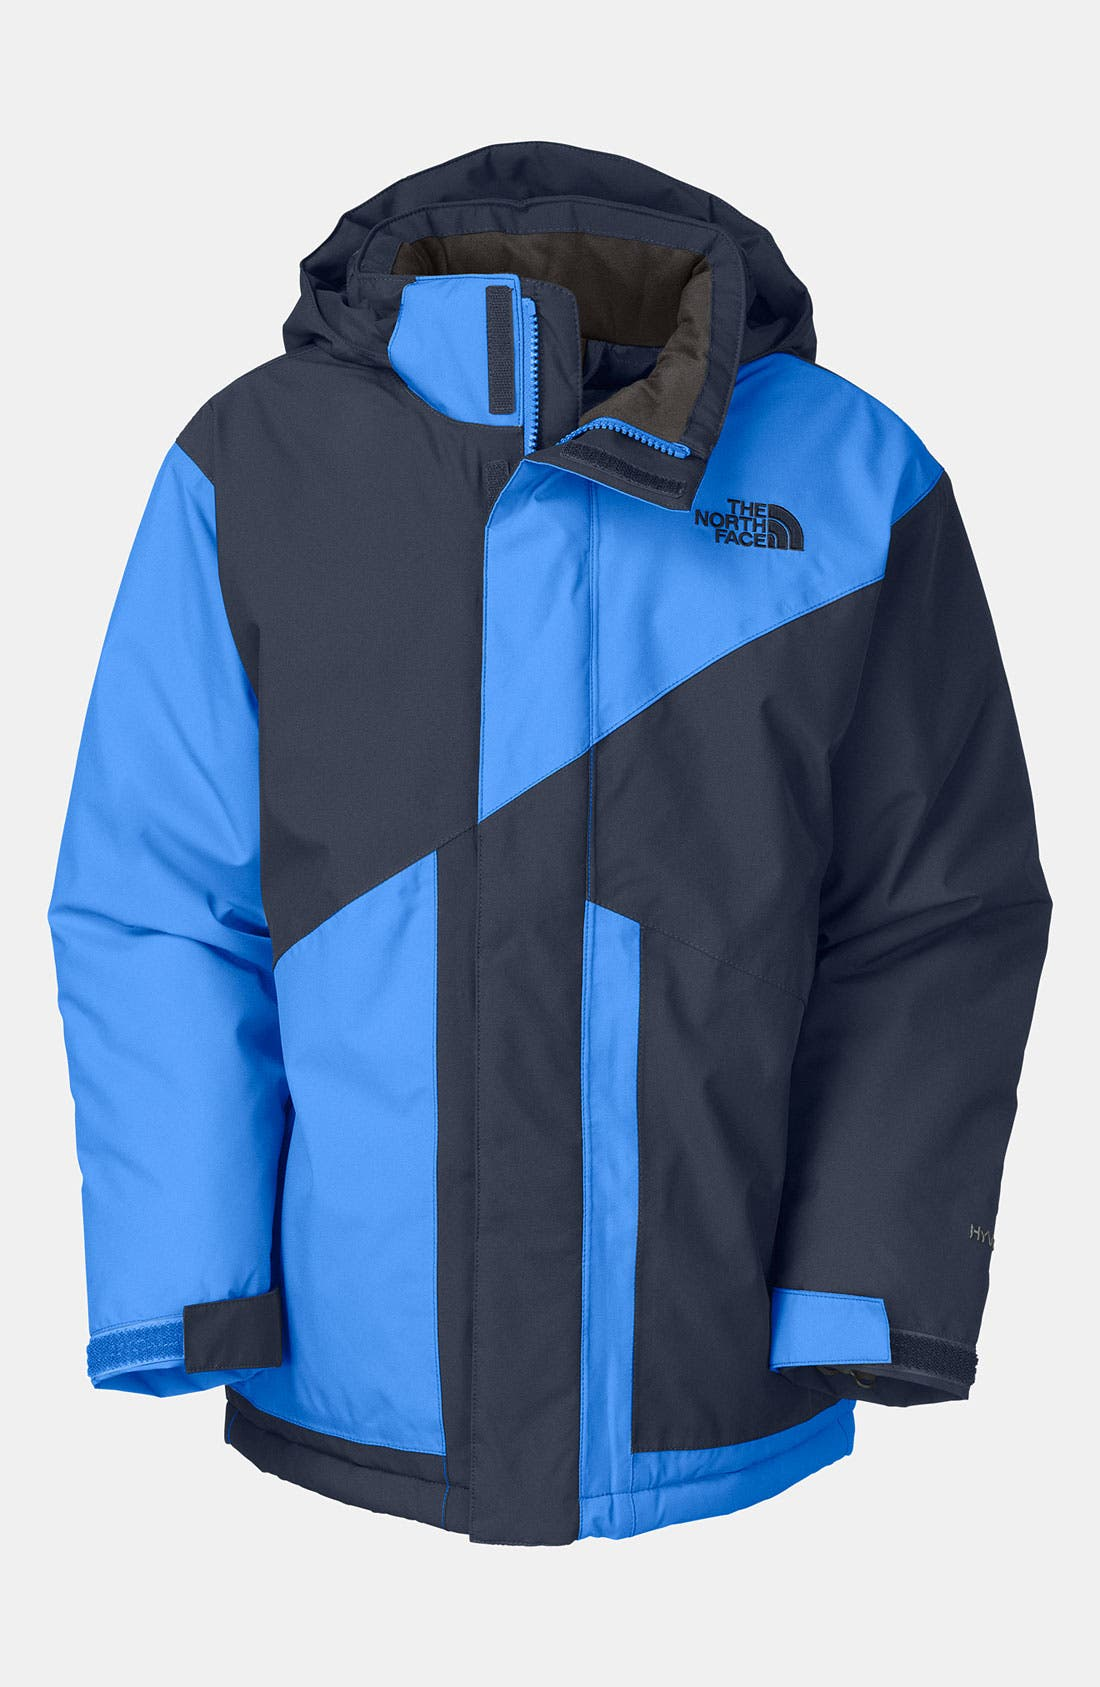 Alternate Image 1 Selected - The North Face 'Brightten' Insulated Jacket (Little Boys)